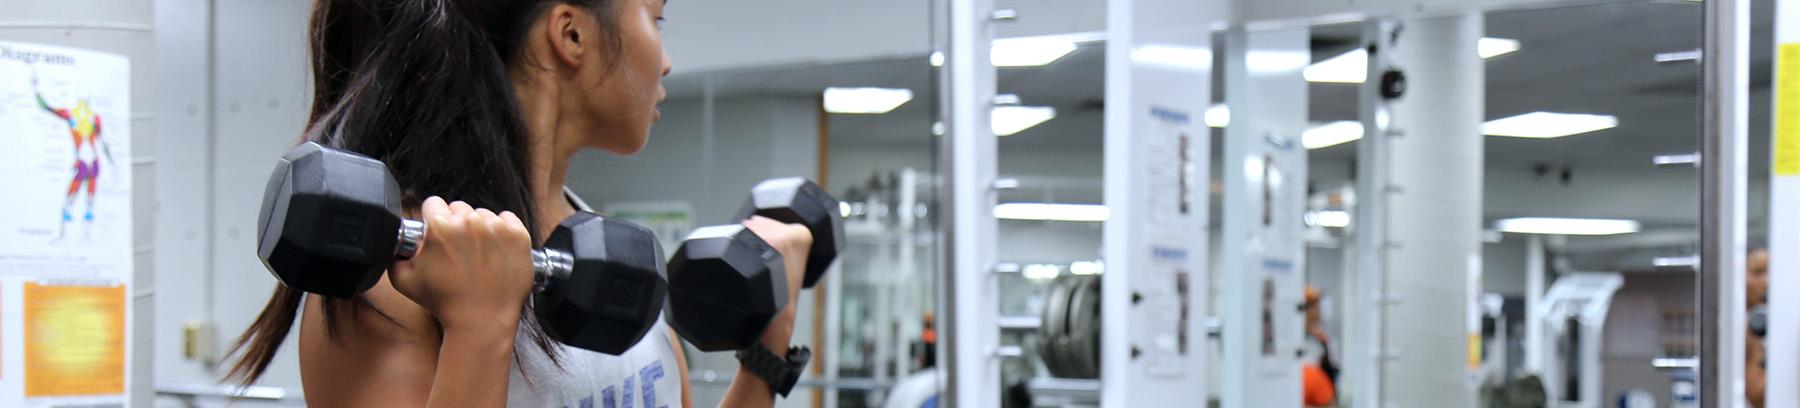 Image of female student lifting weights.